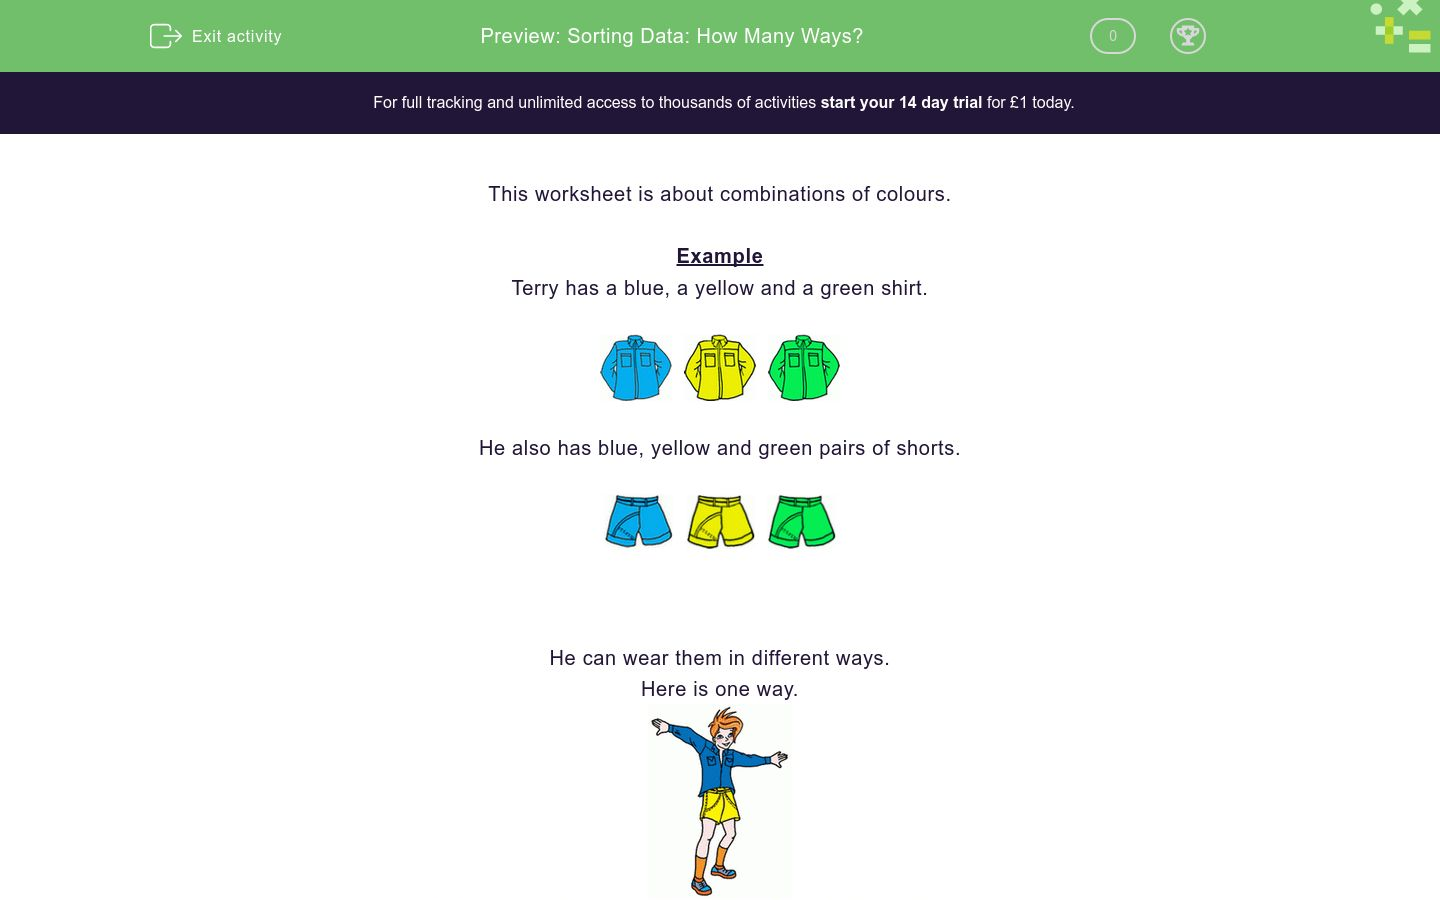 'Sorting Data: How Many Ways?' worksheet